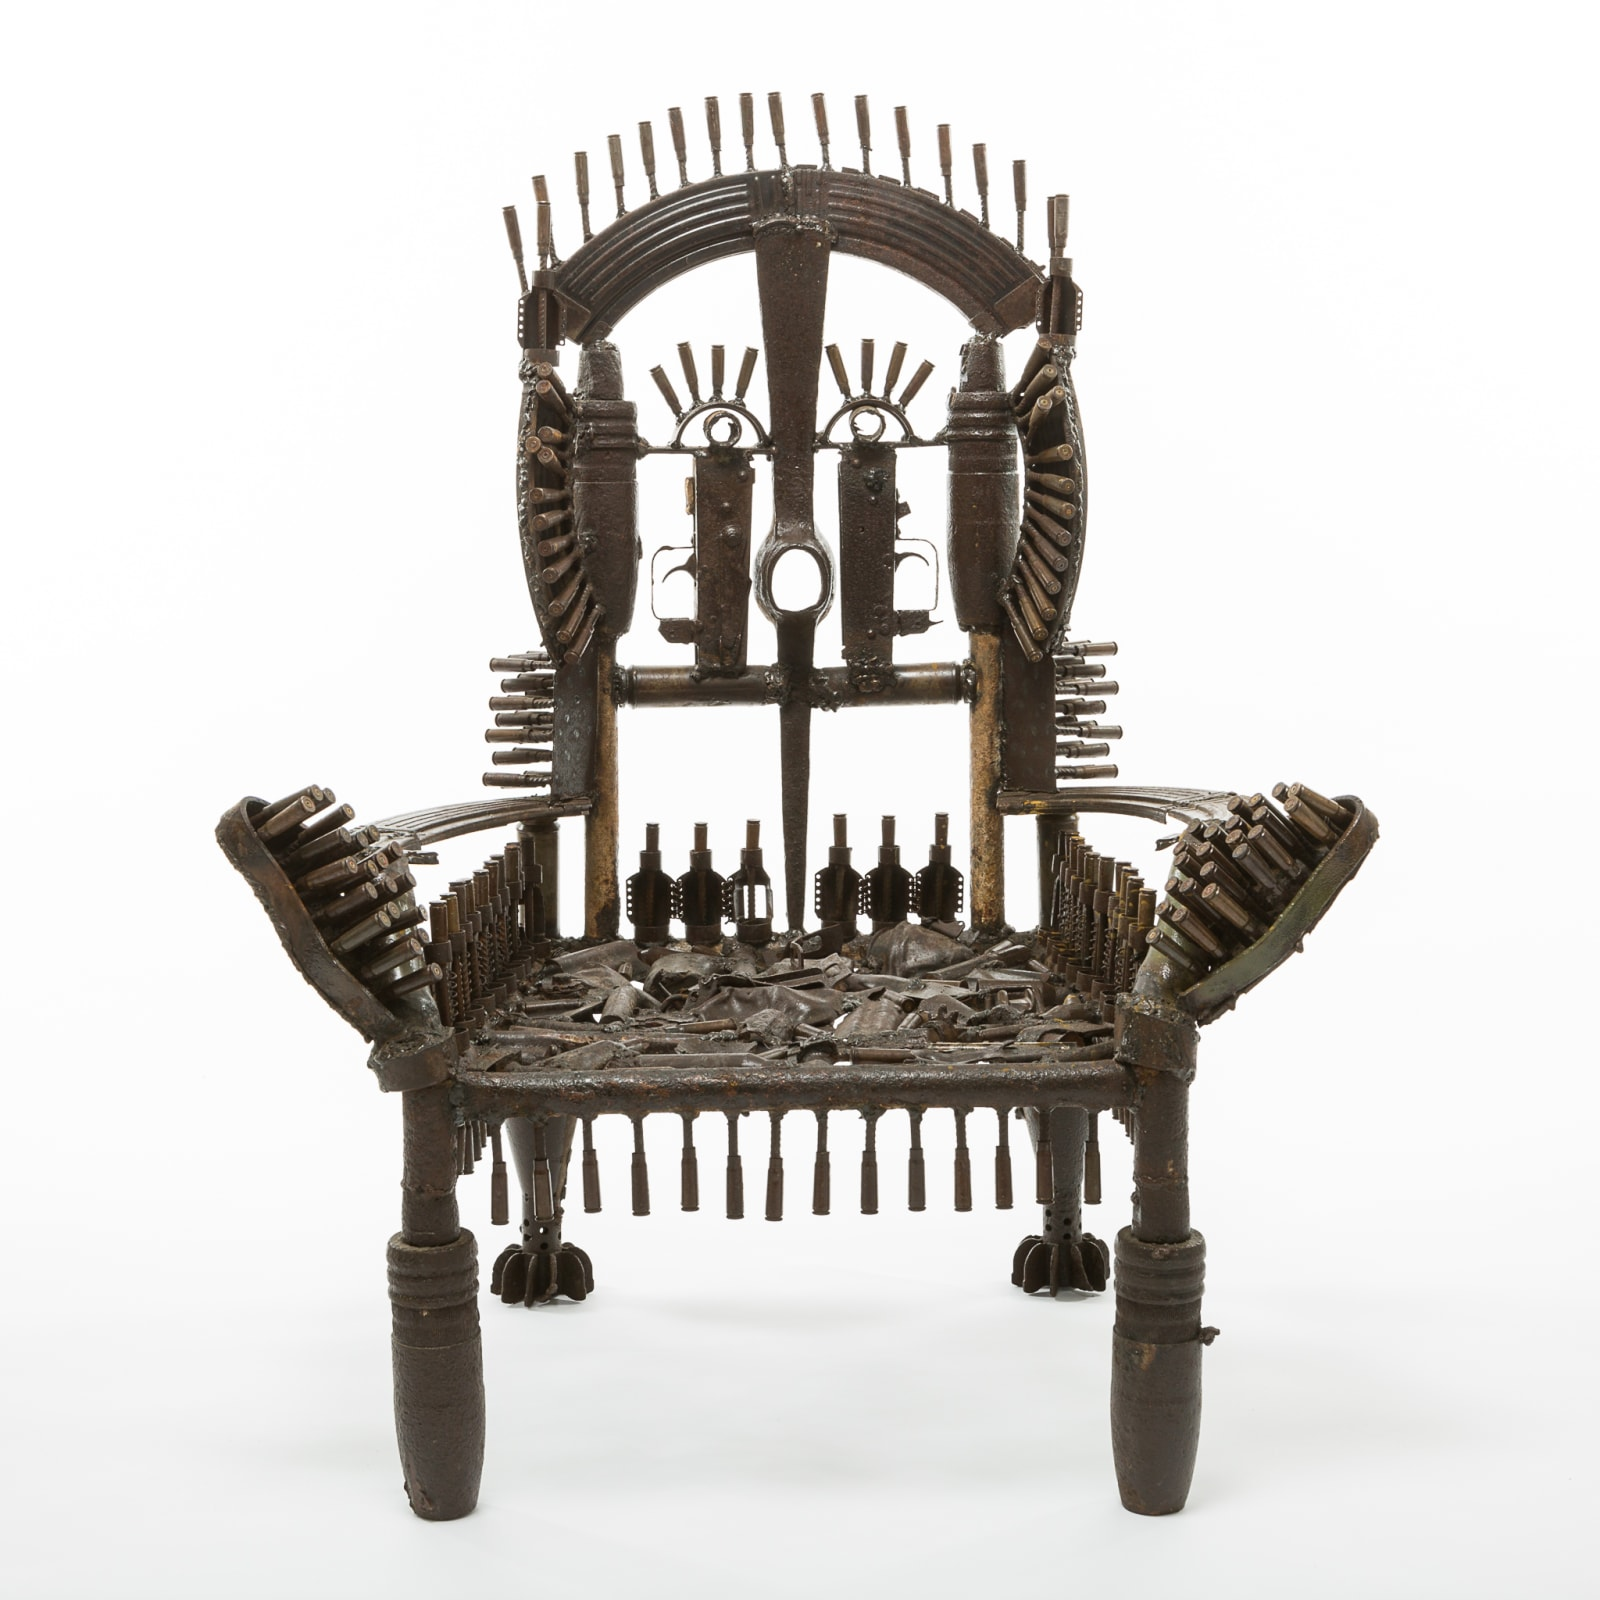 Goncalo Mabunda  The Throne of the Shining Dream, 2016  Decommissioned arms  71 x 55 x 93 cm